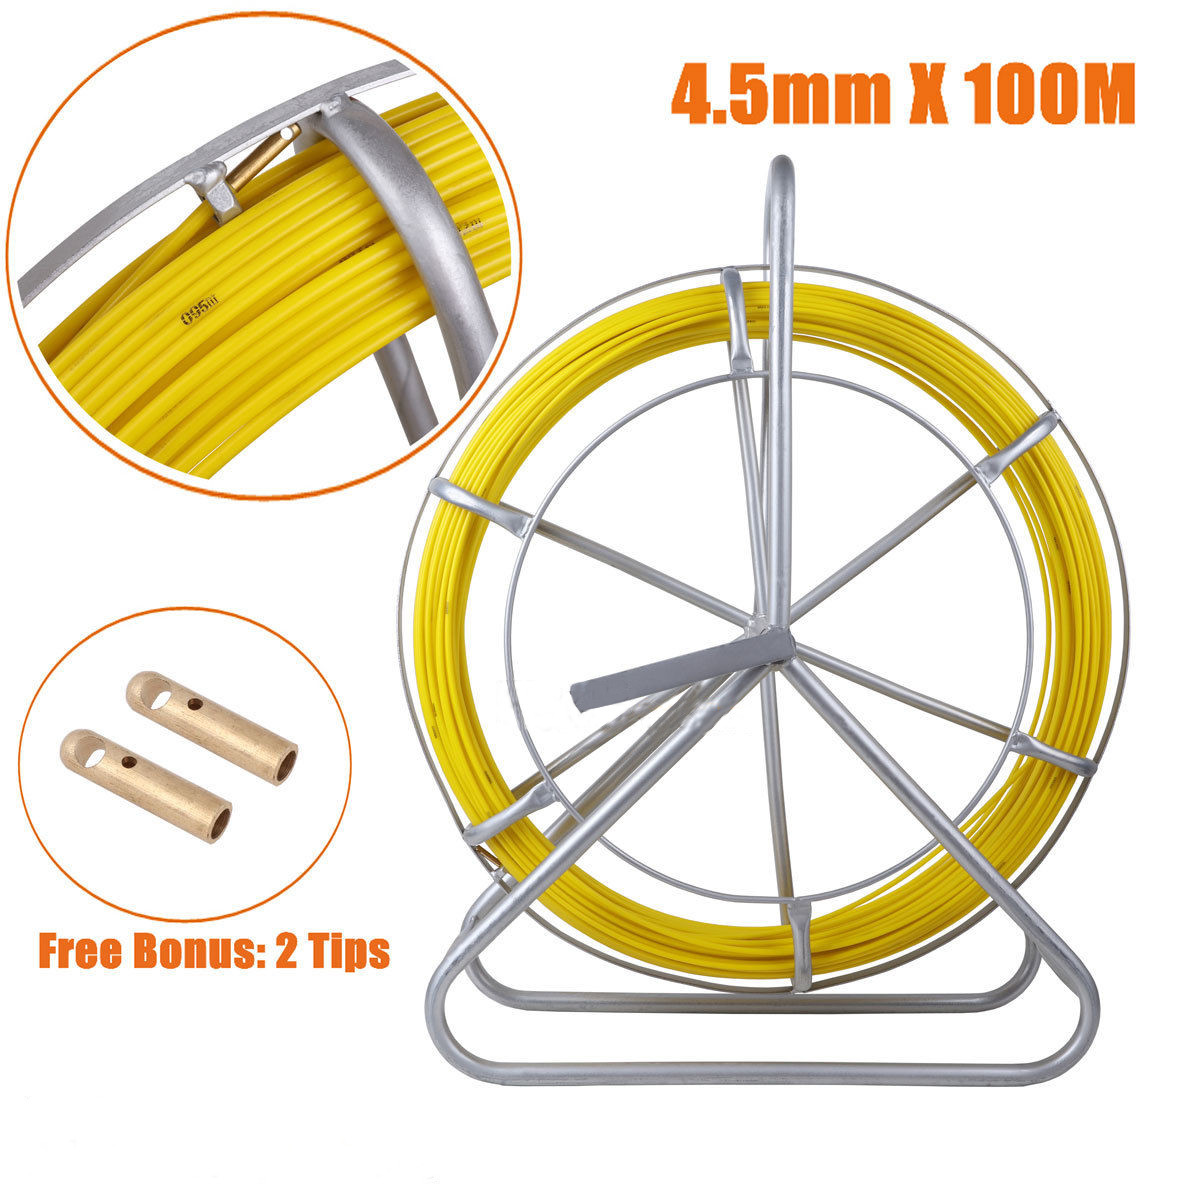 4.5mm Fish Tape Fiberglass Wire Cable Running Rod Duct Ro...